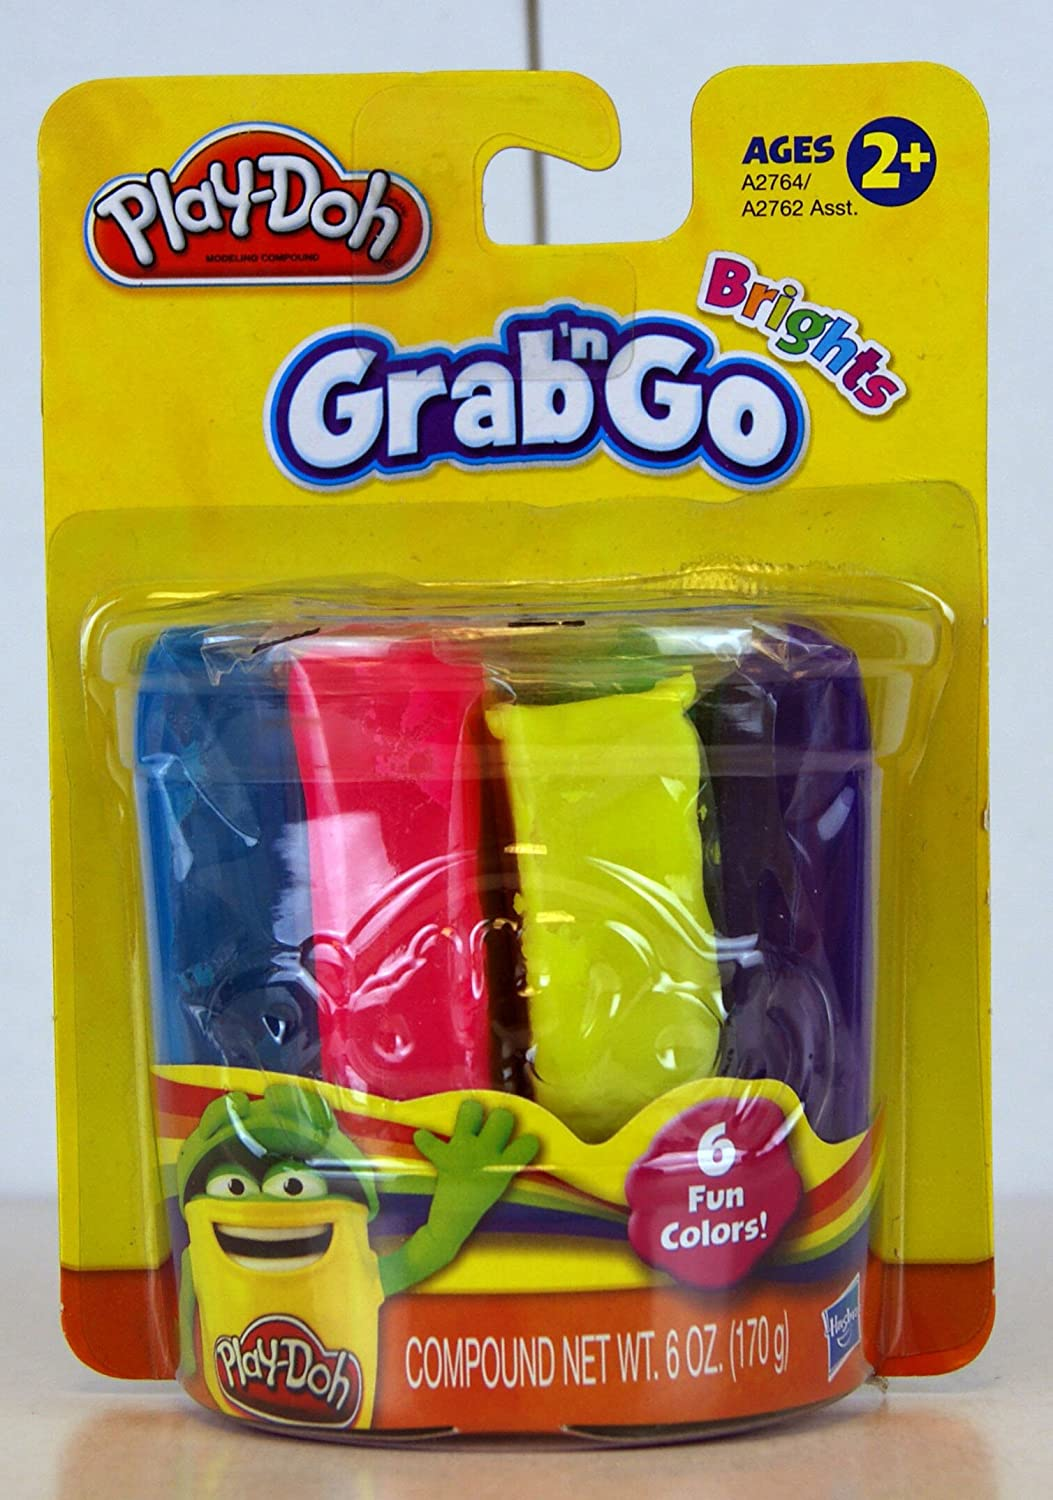 Play Doh Classic Grab 'N Go Brights 6 Fun Colors